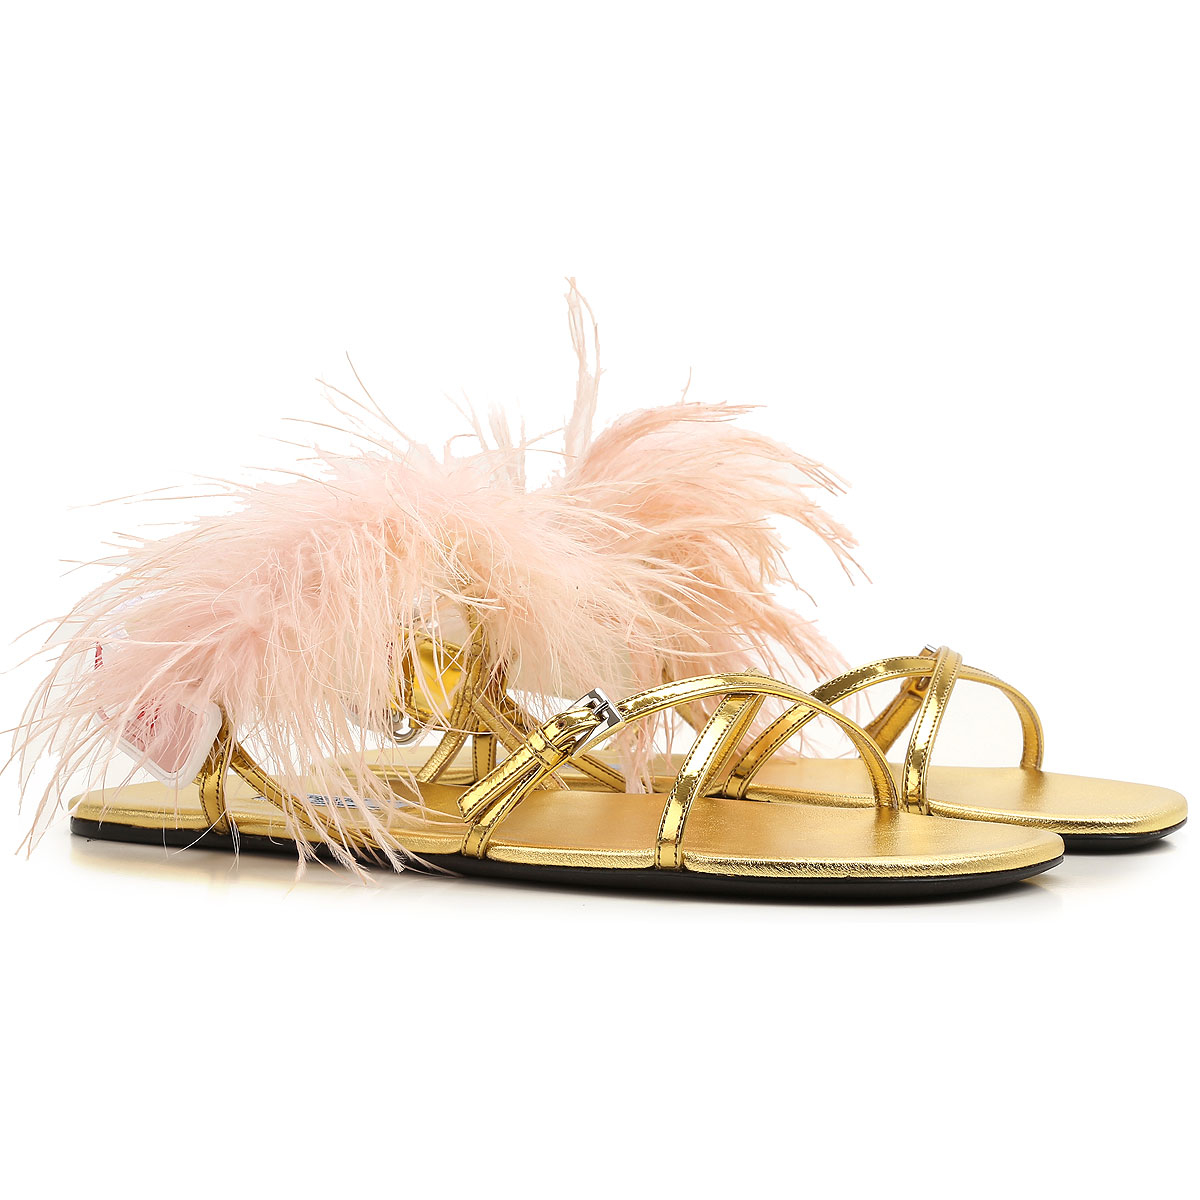 Prada Sandals for Women On Sale in Outlet Gold UK - GOOFASH